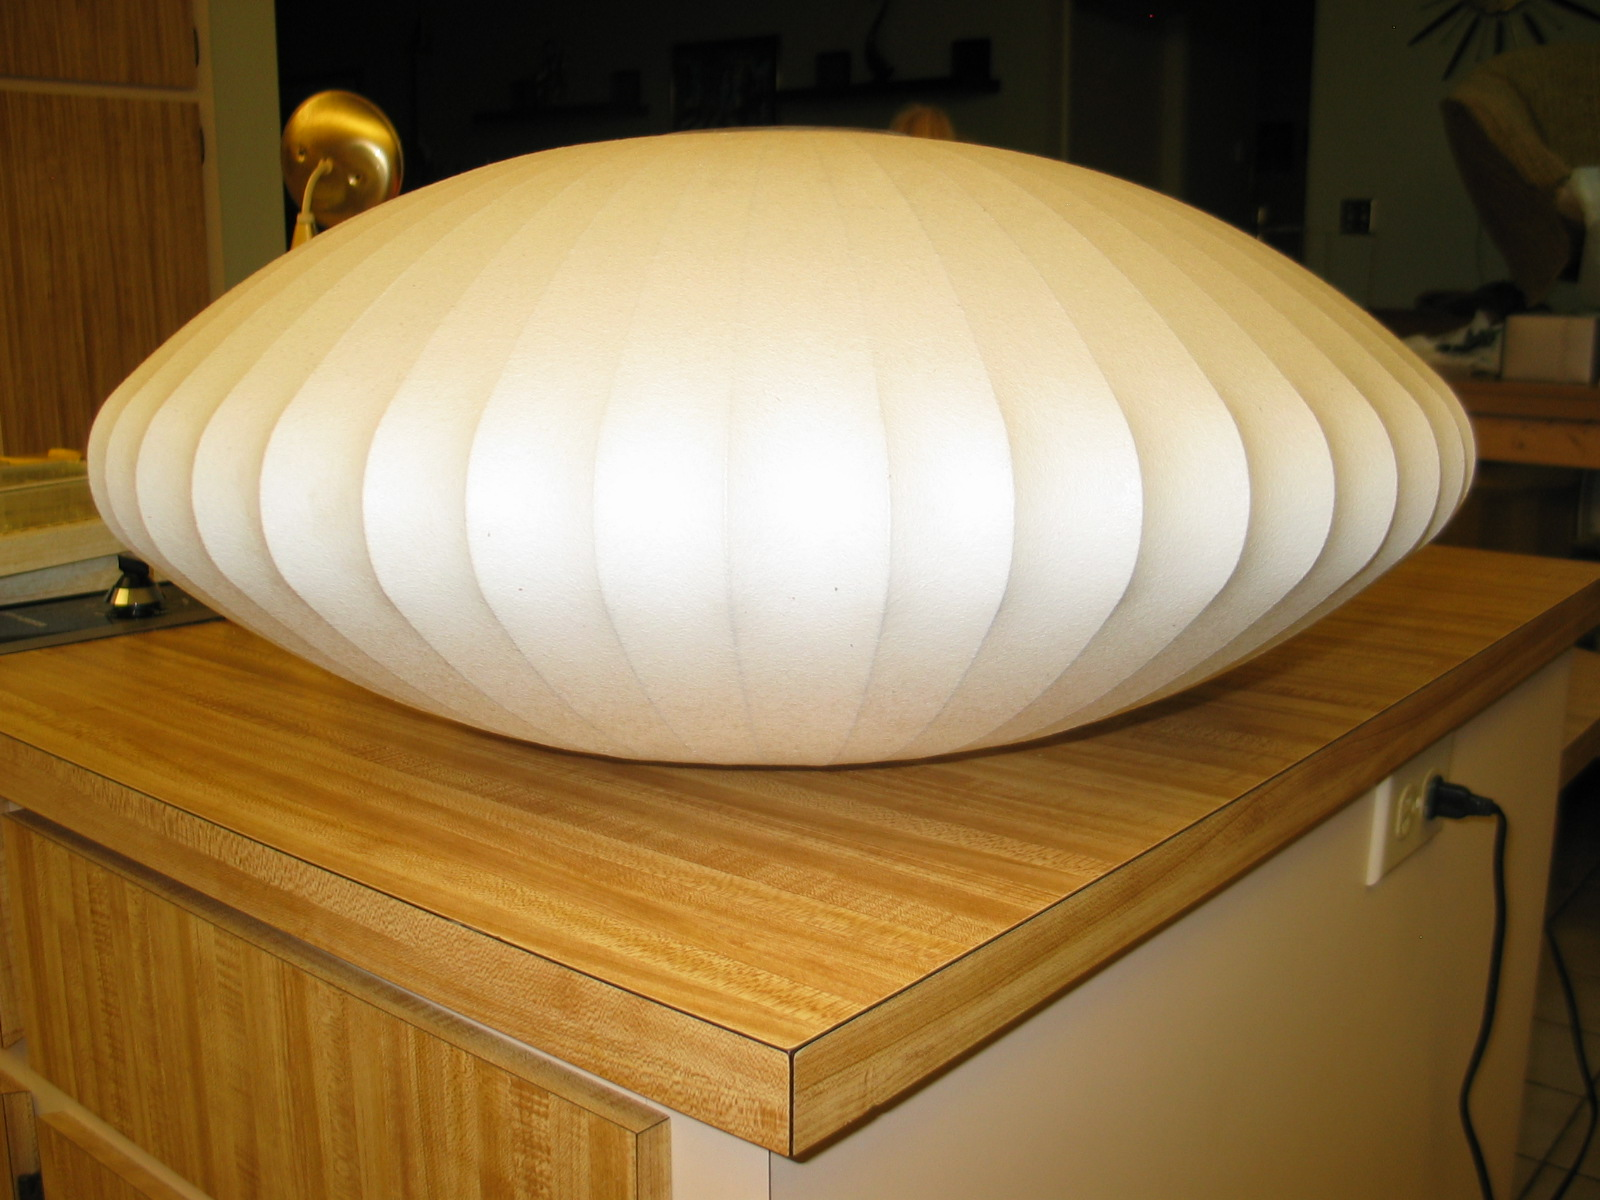 Daves mid century stuff george nelson bubble lamp saucer pendant shade man this thing is really clean no tears in the fabric its solid aloadofball Images